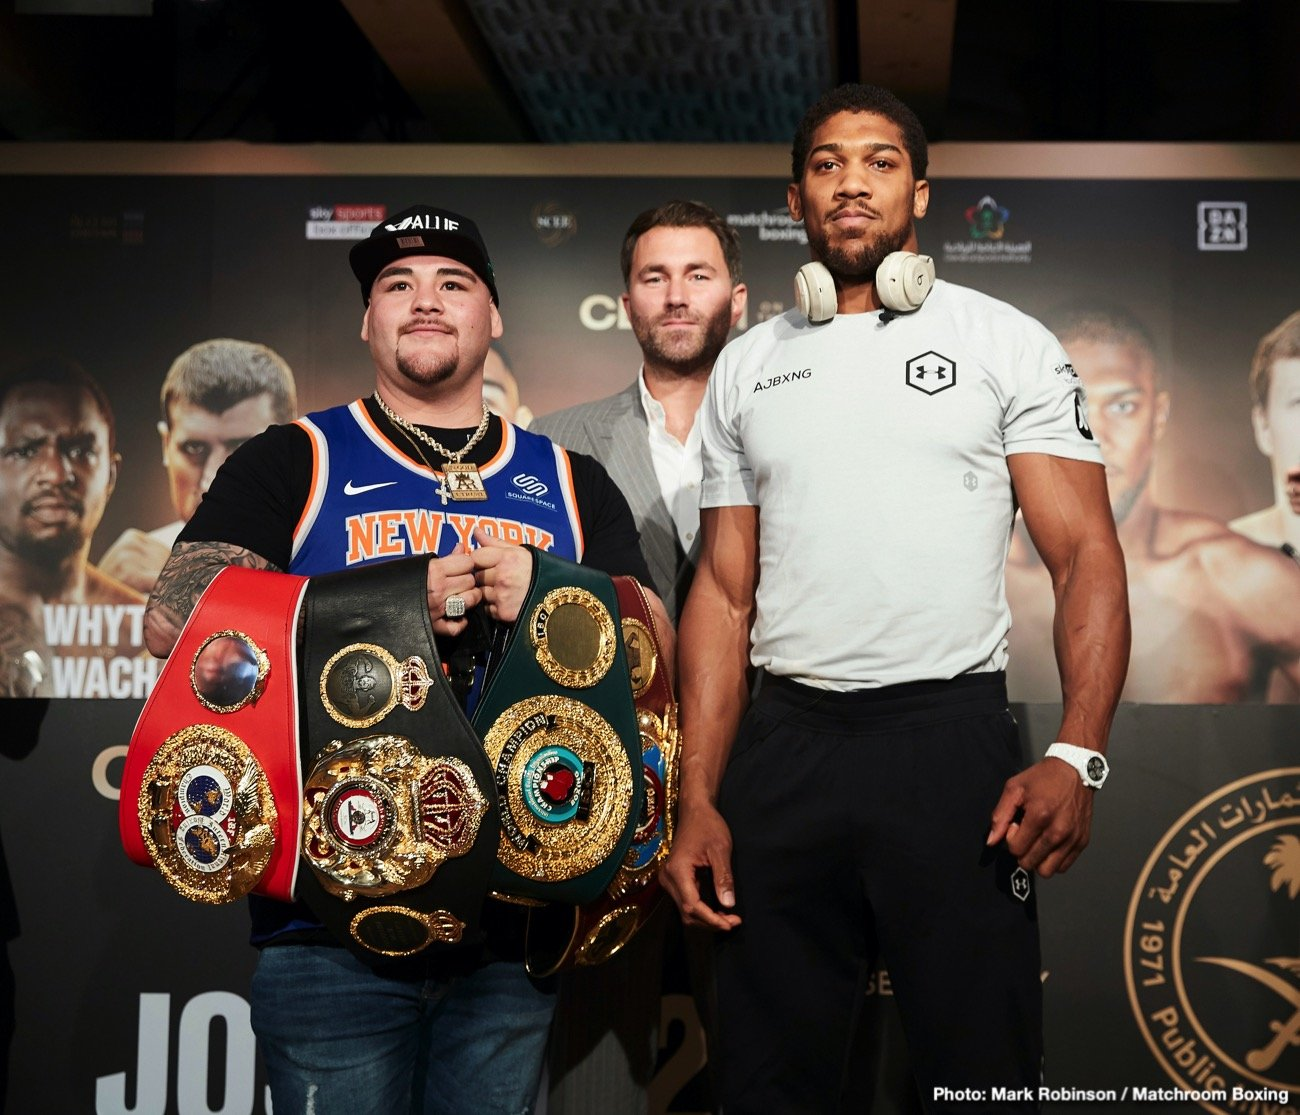 Anthony Joshua Andy Ruiz DAZN Joshua vs Ruiz Ruiz vs. Joshua 2 Sky Sports Box Office